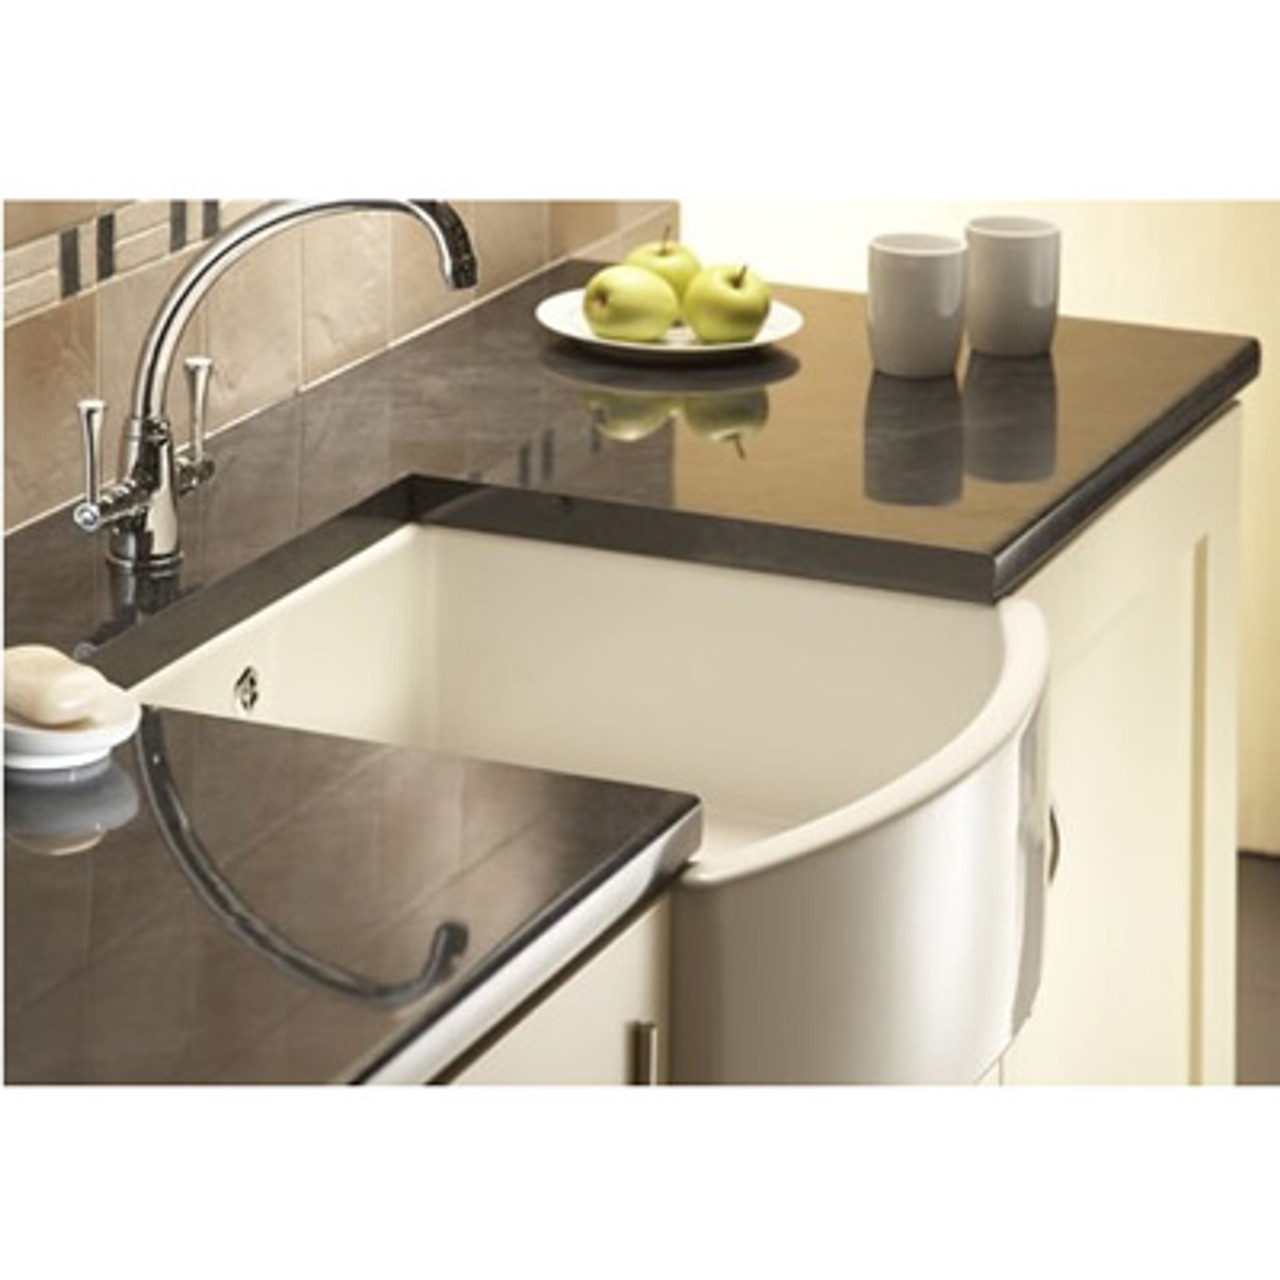 ... Shaws Waterside 800 Kitchen Sink ...